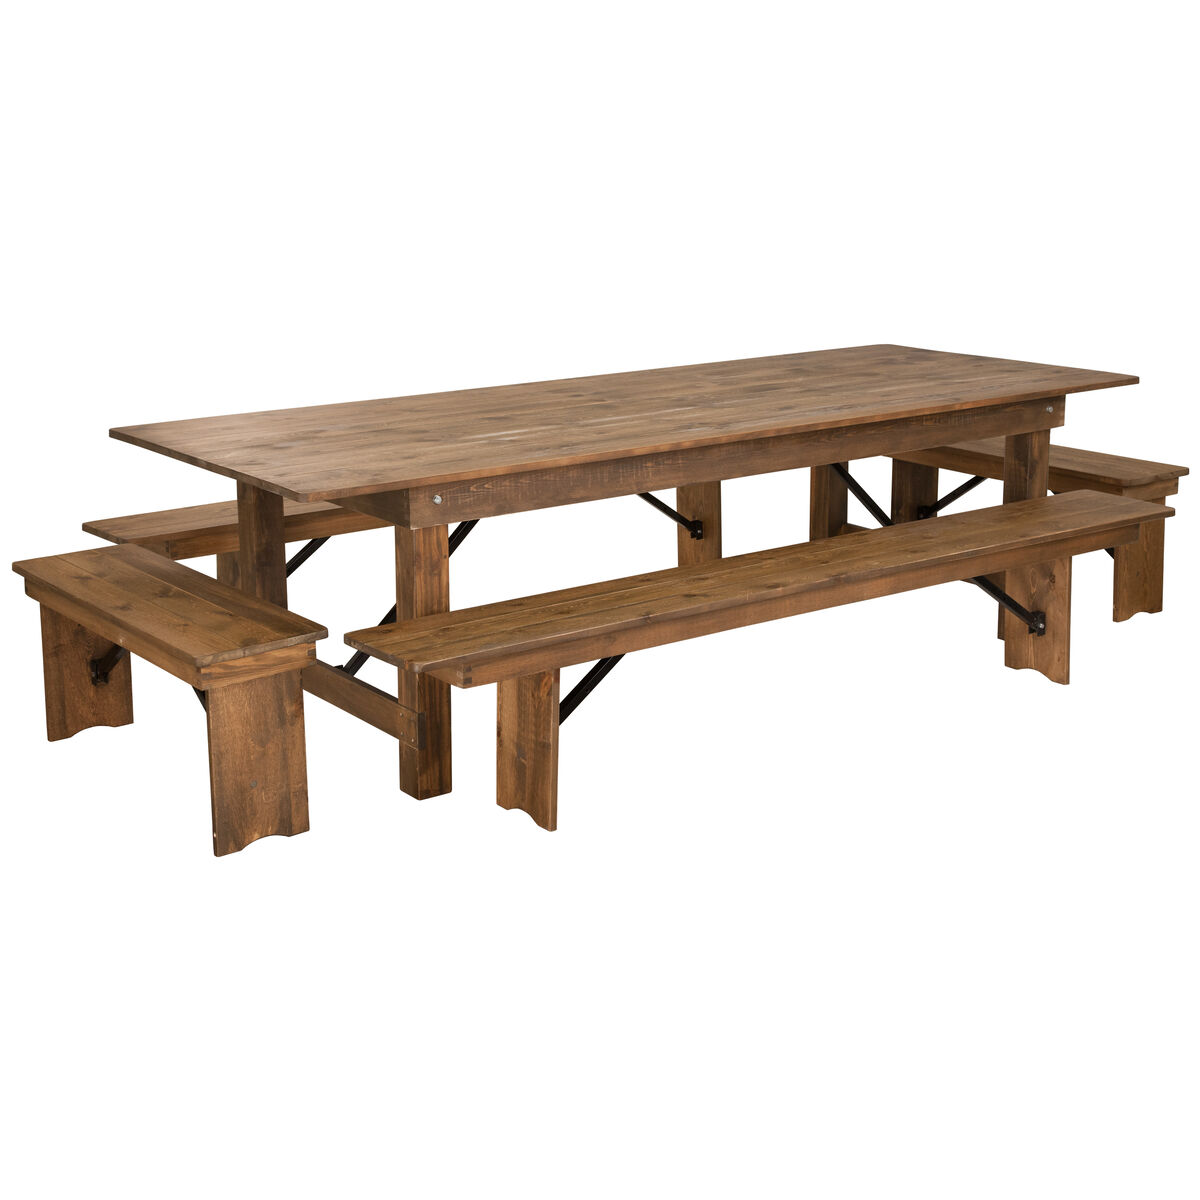 9x40 farm table4 bench set xa farm 7 gg foldingchairs4less our hercules series 9 x 40 antique rustic folding farm table and four watchthetrailerfo